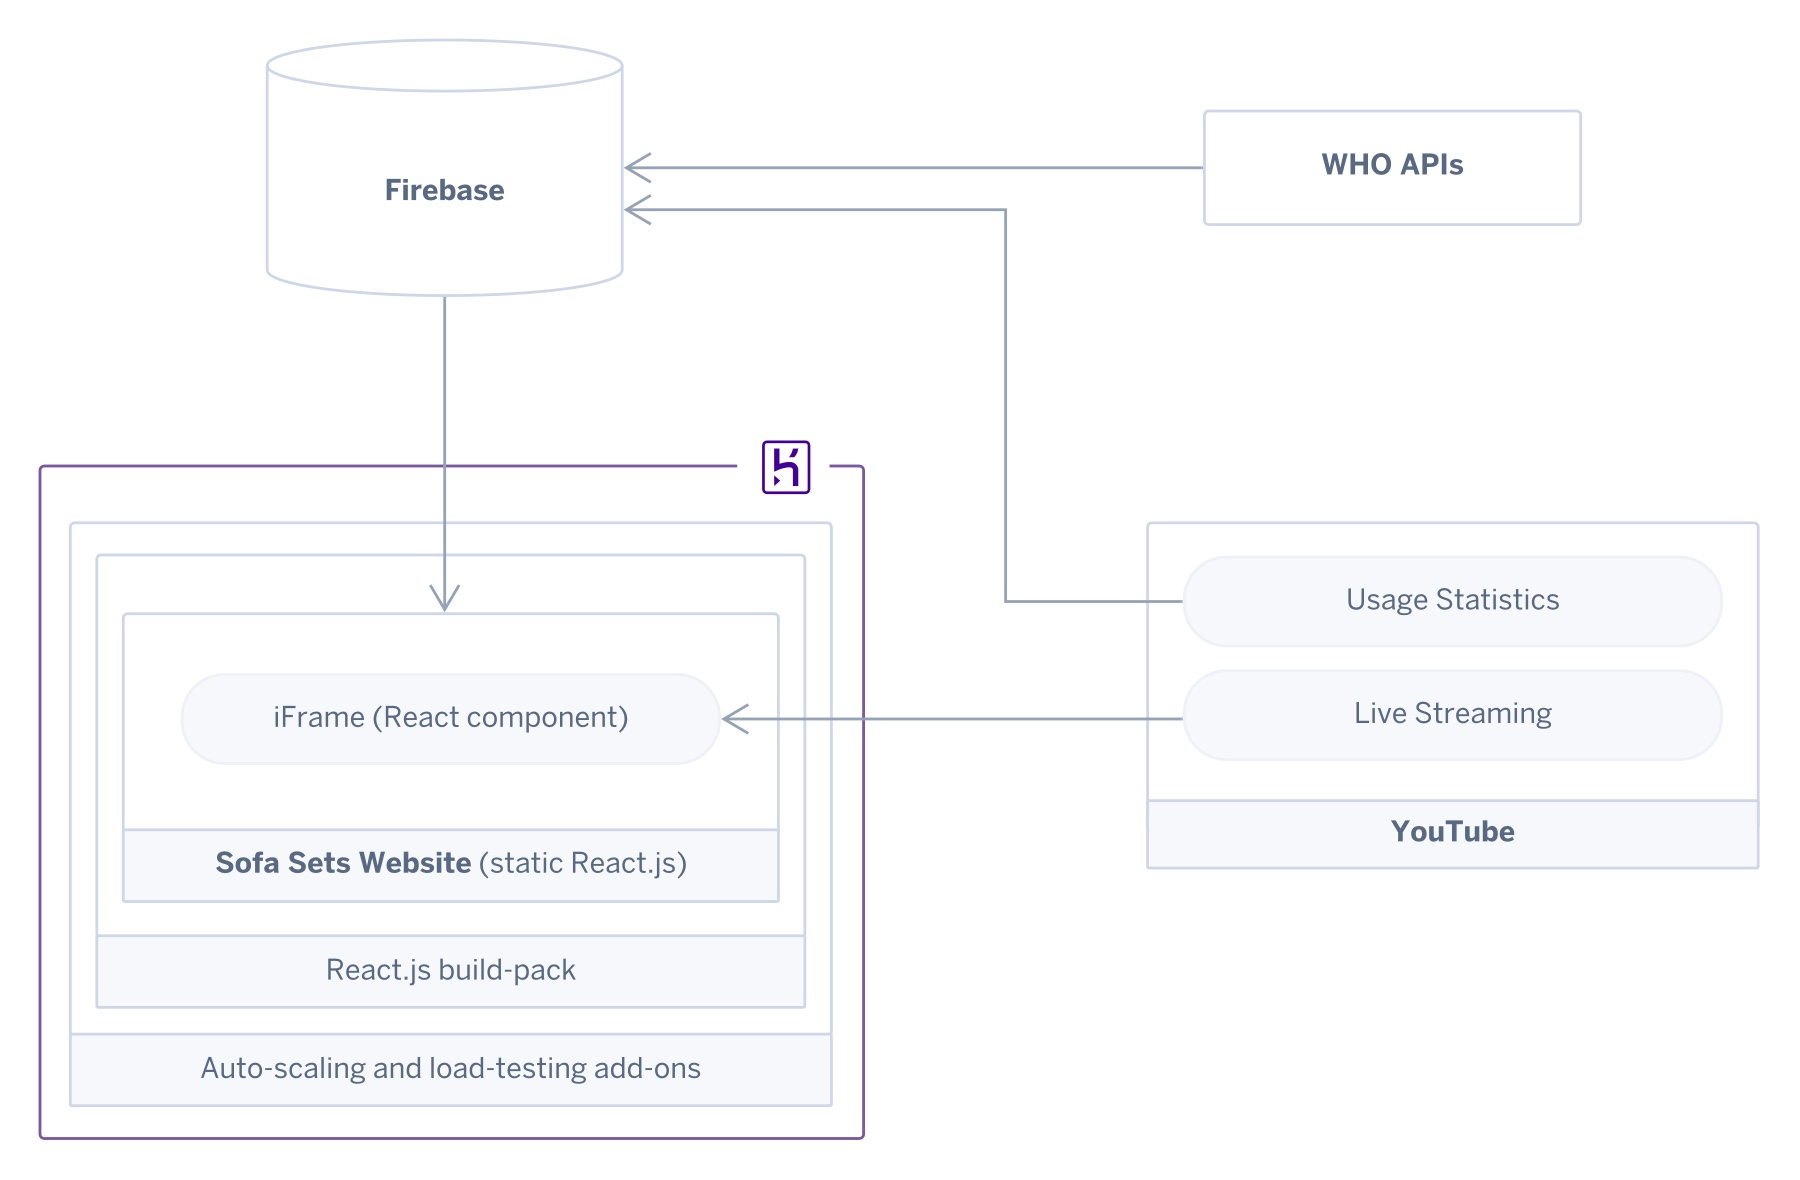 A diagram showing the architecture of the Heroku app and its connections to YouTube and Firebase